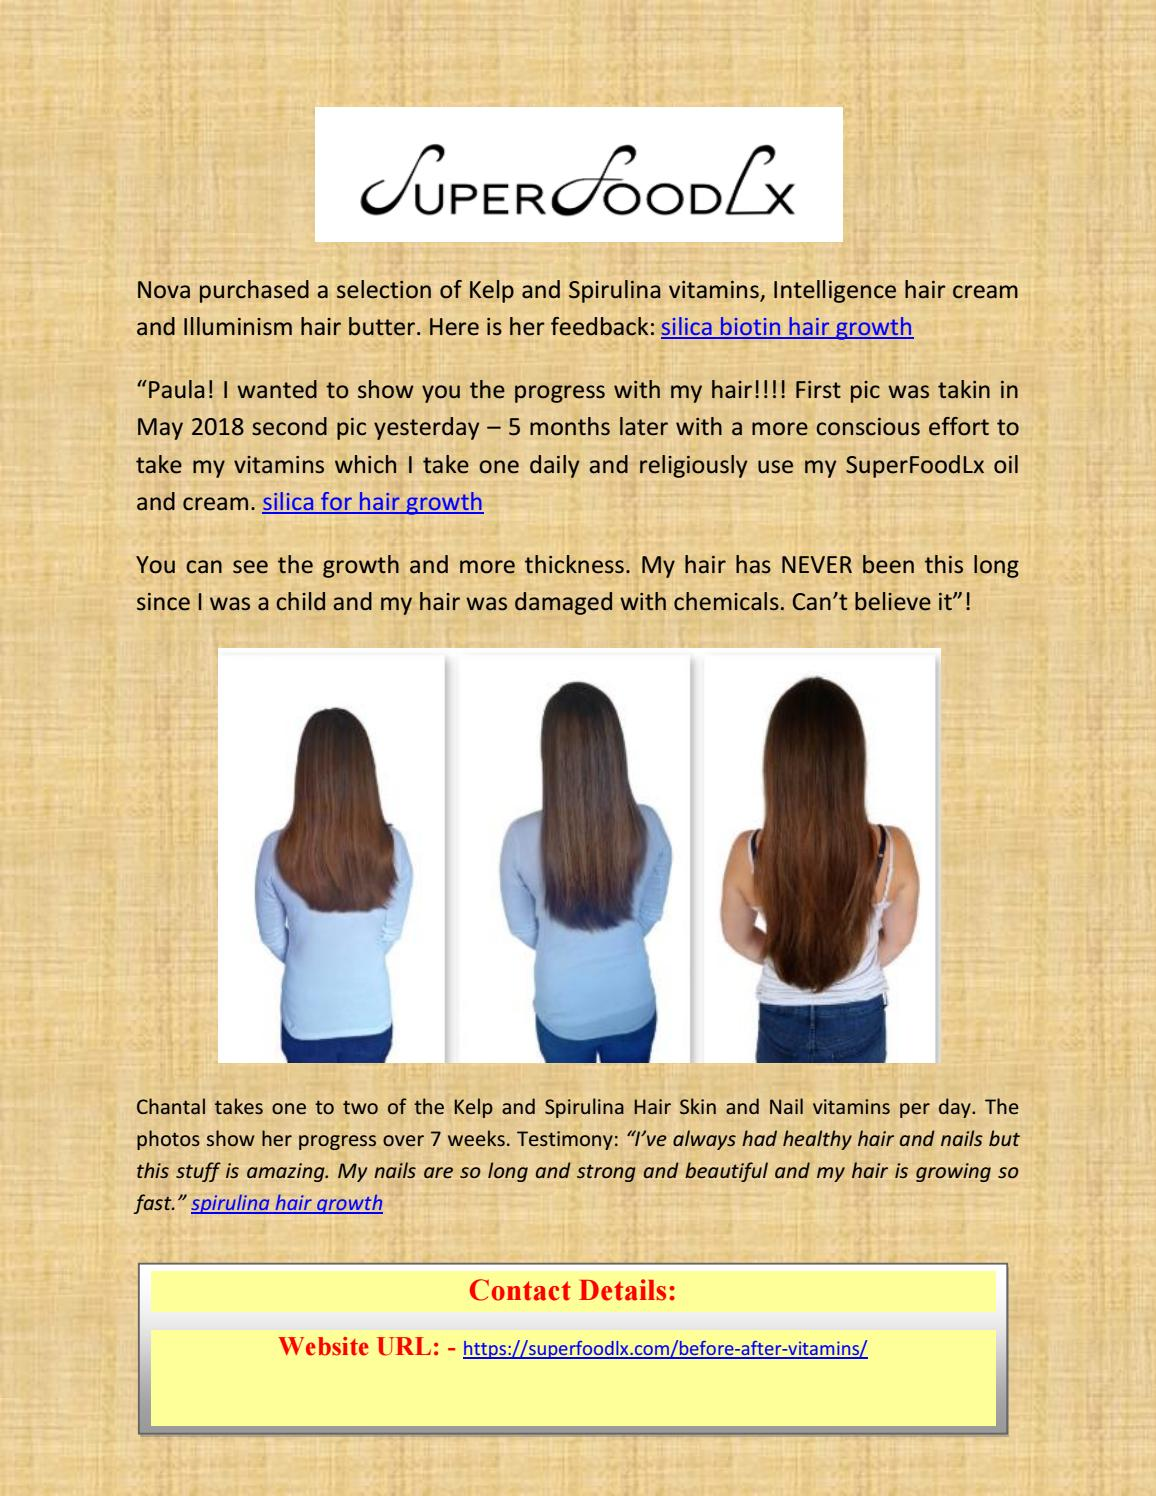 Hair Skin And Nails Vitamins Before And After : nails, vitamins, before, after, Silica, Biotin, Growth, Smith, Issuu